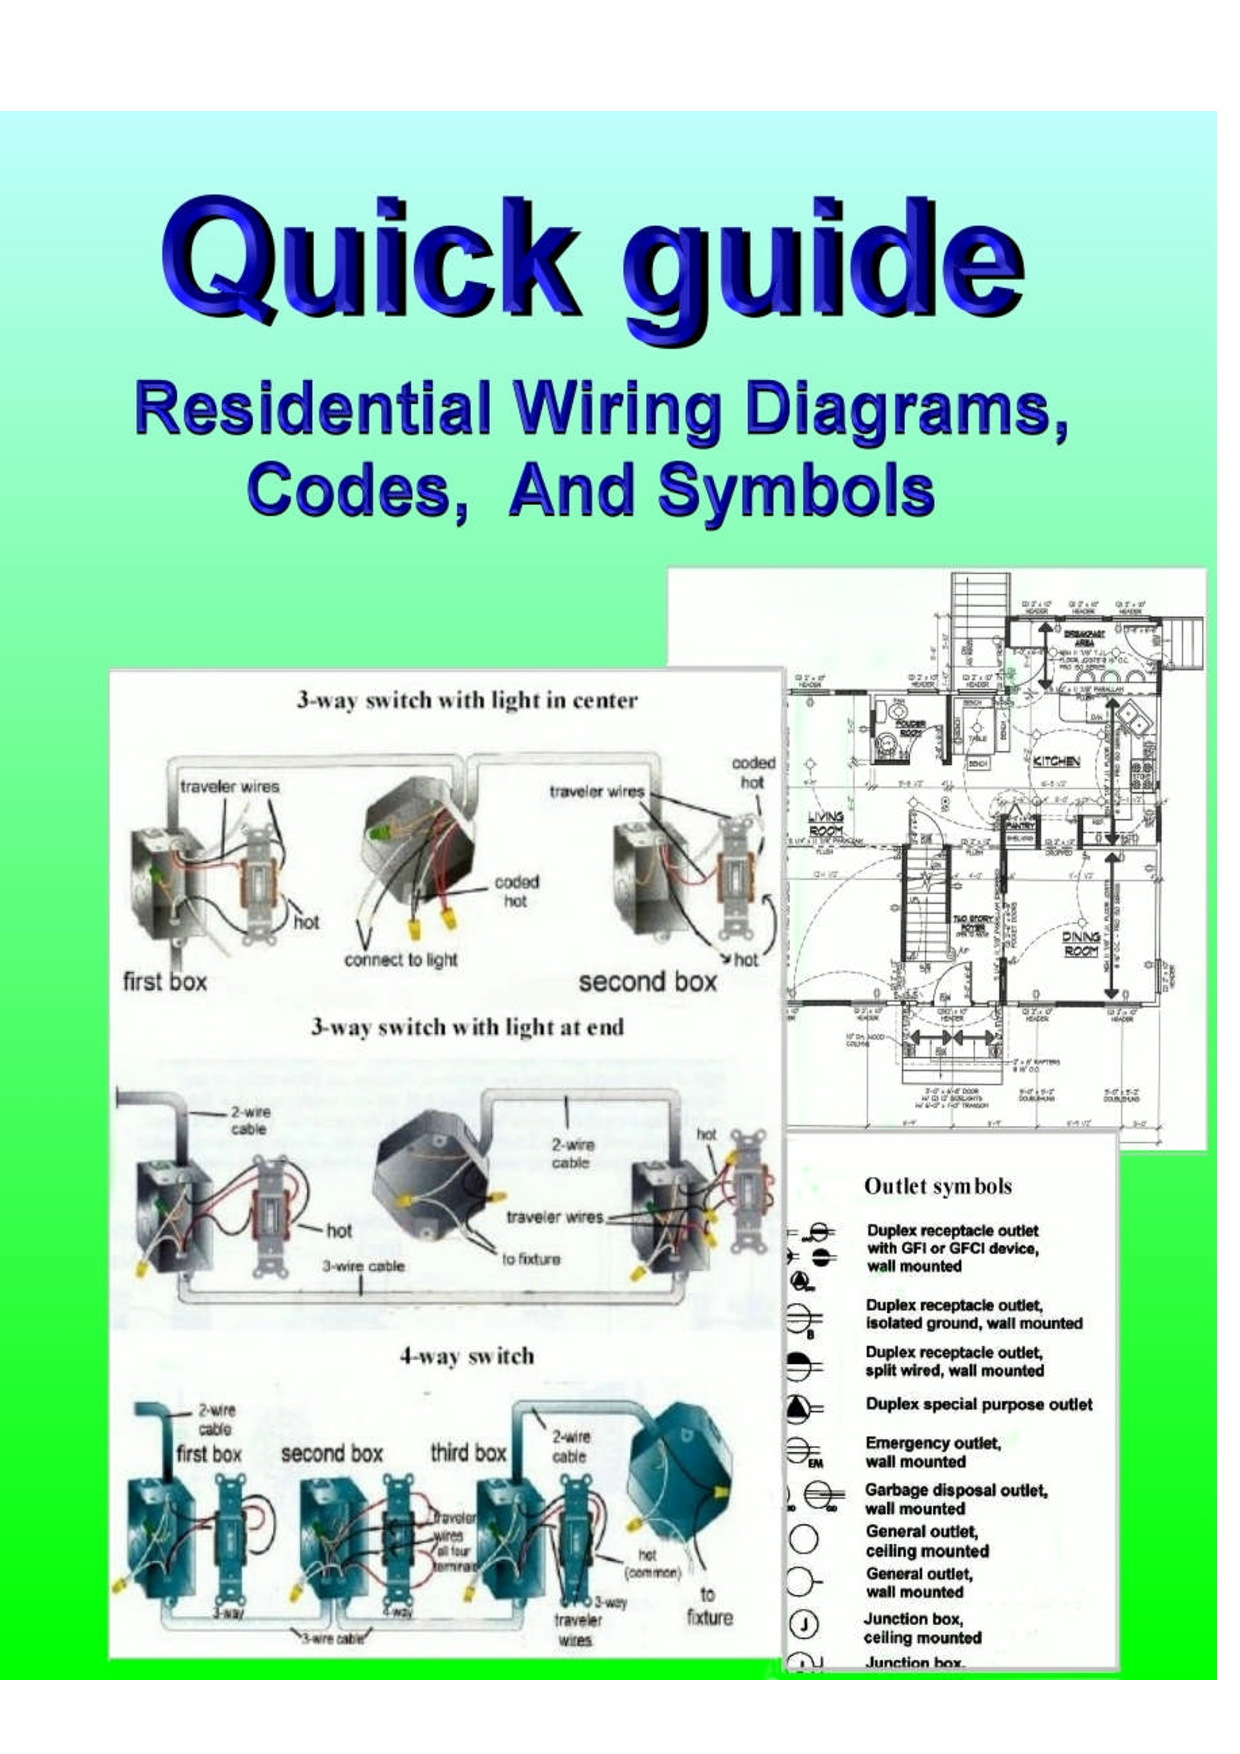 Home Electrical Wiring Diagrams.pdf Download legal documents 39 ...